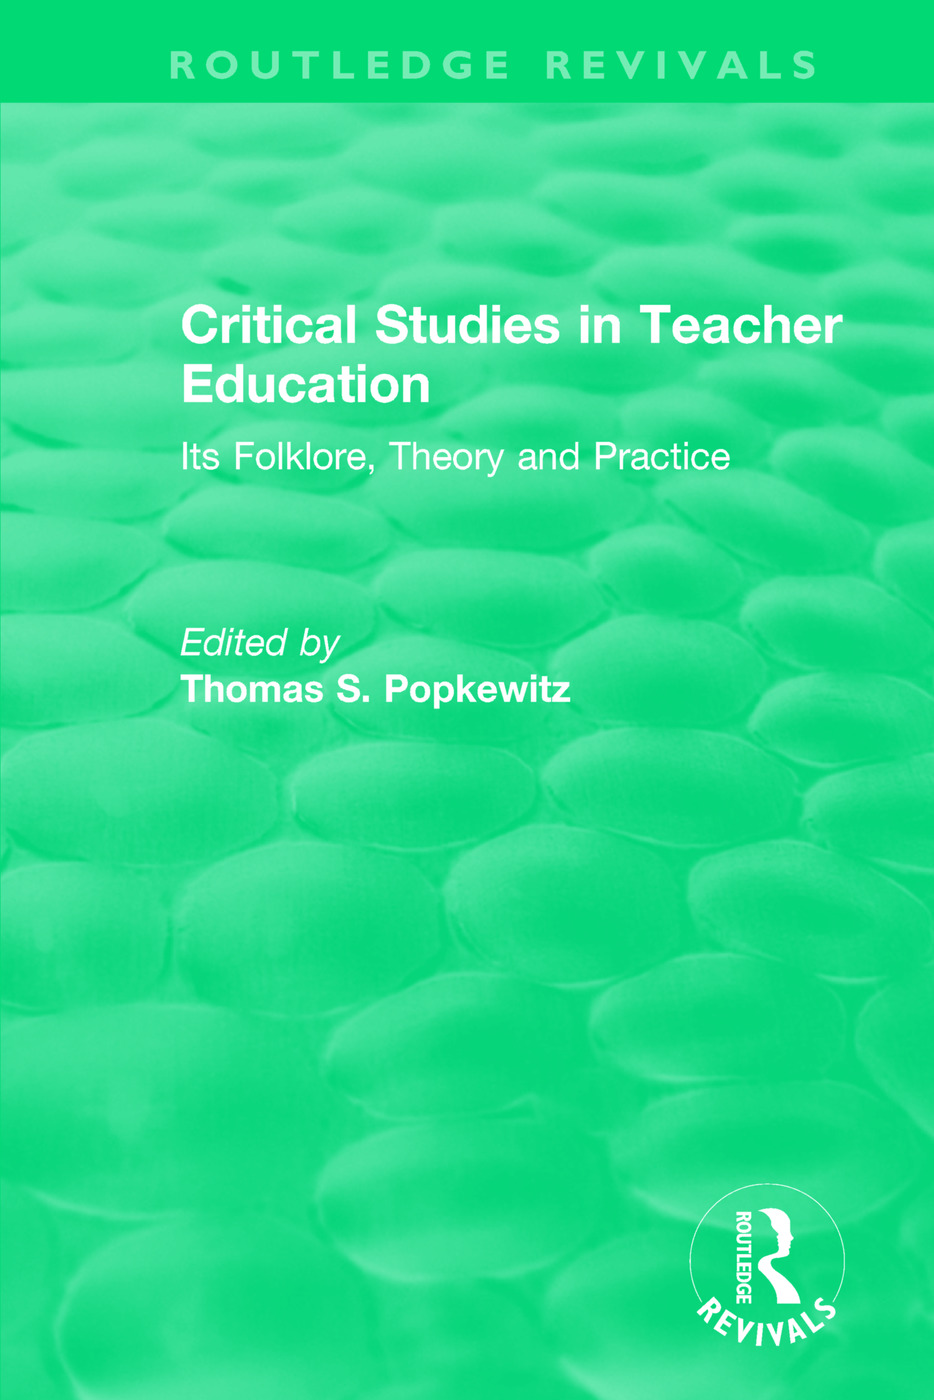 Critical Studies in Teacher Education